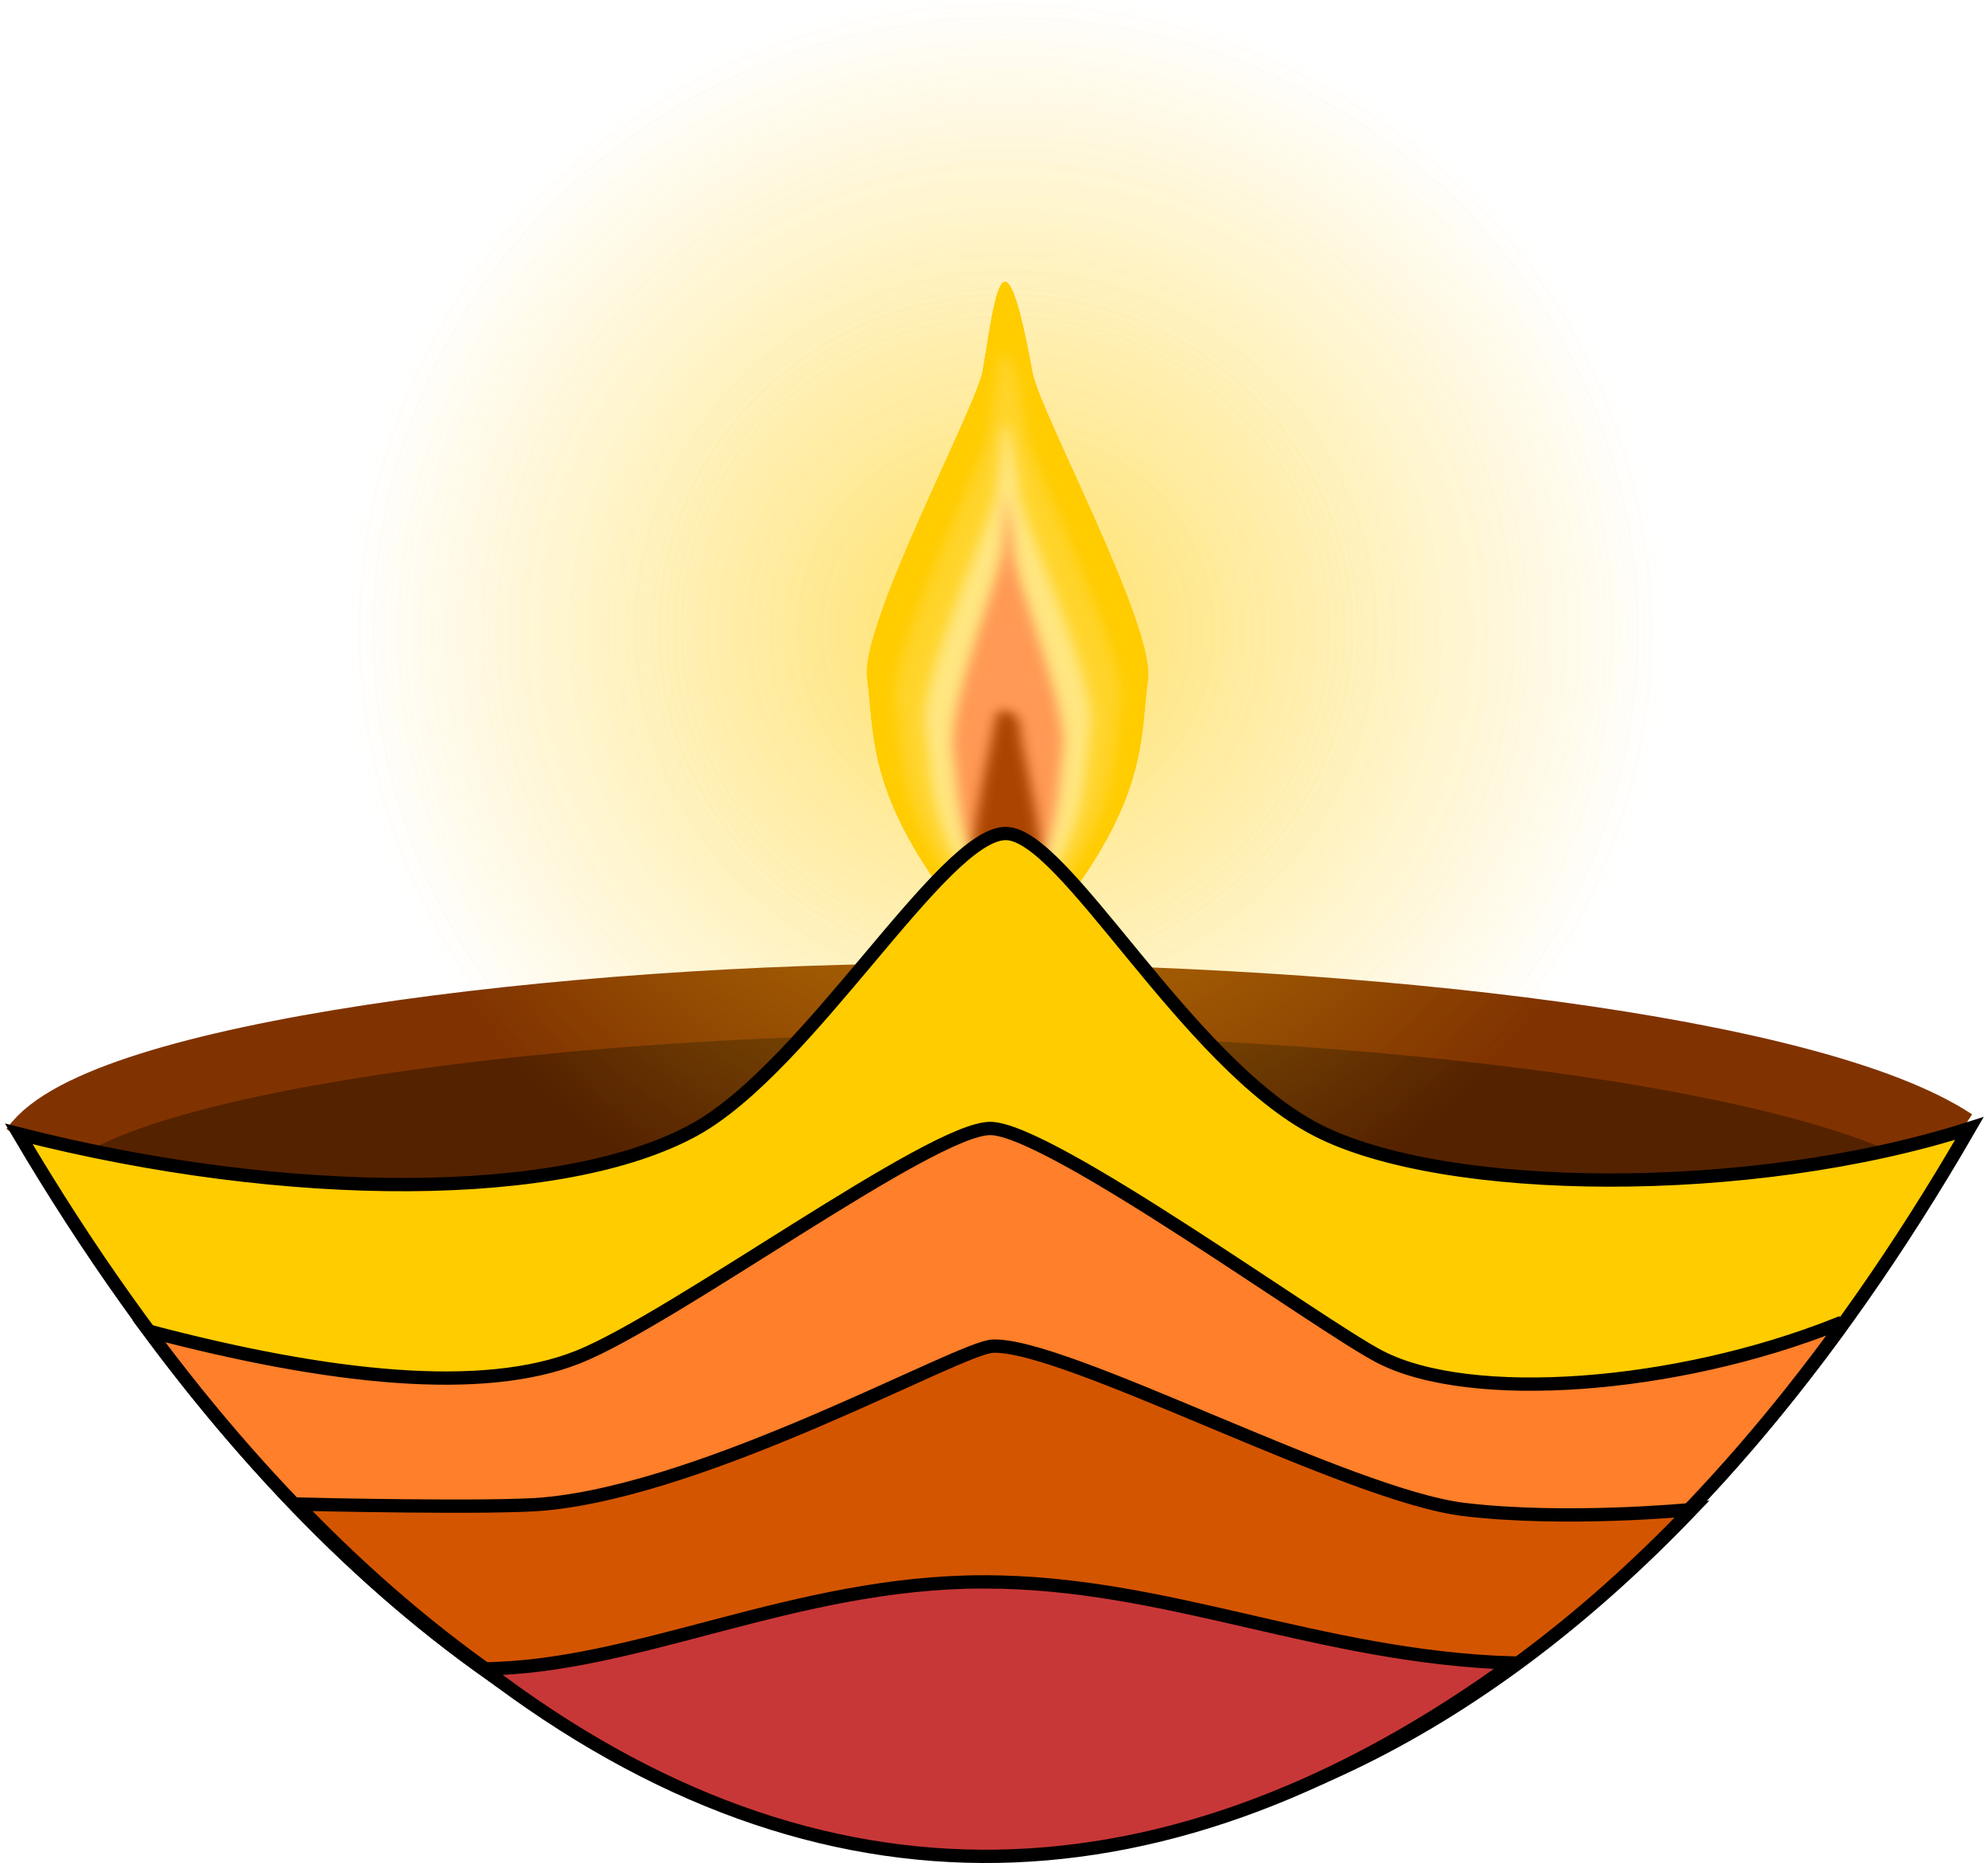 Diwali lamp by zeimusu